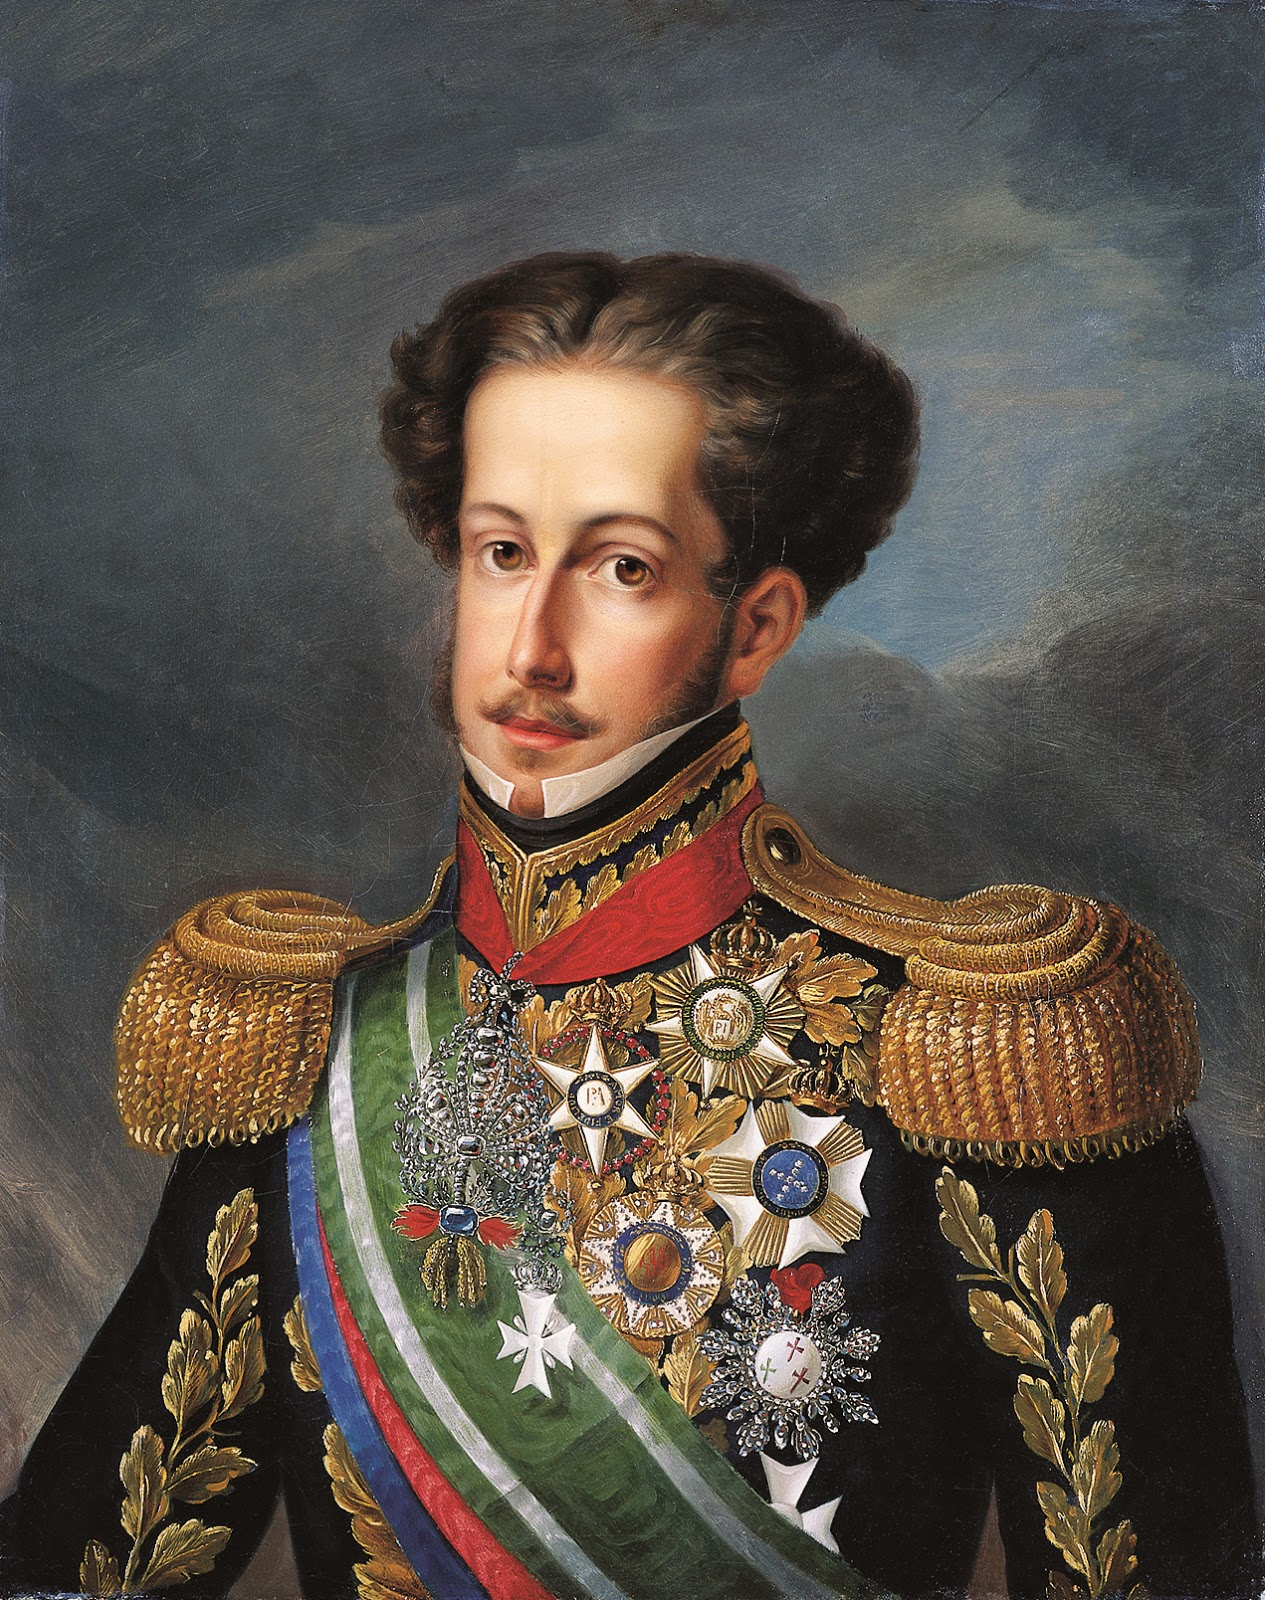 List of Monarchs of Brazil (A Whole New World)